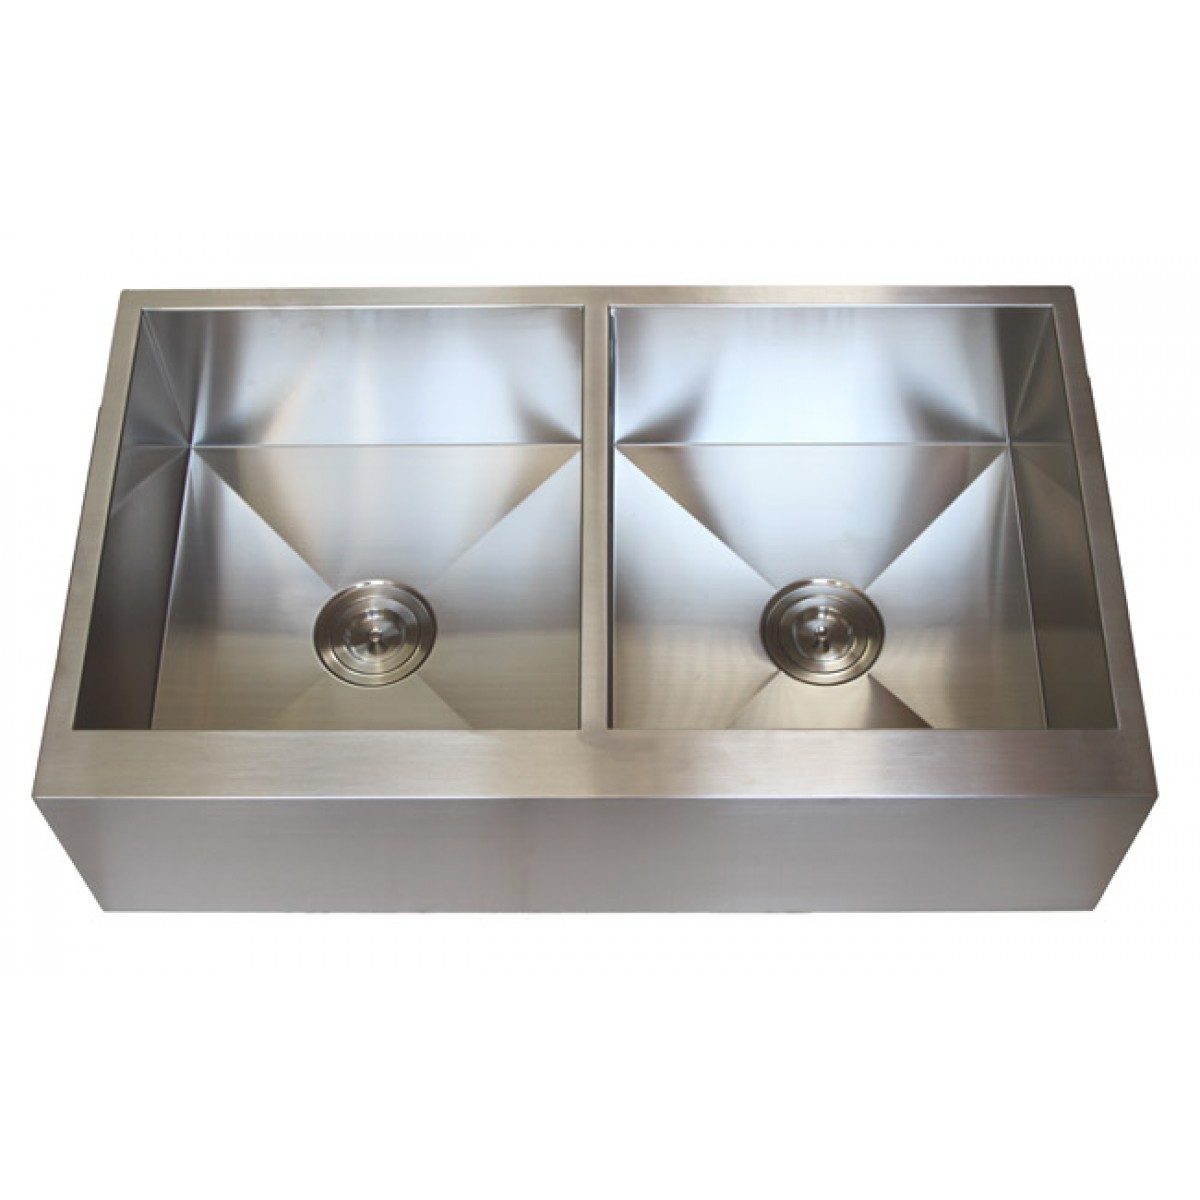 Bon 36 Inch Stainless Steel Flat Front Farmhouse Apron Kitchen Sink 50/50  Double Bowl